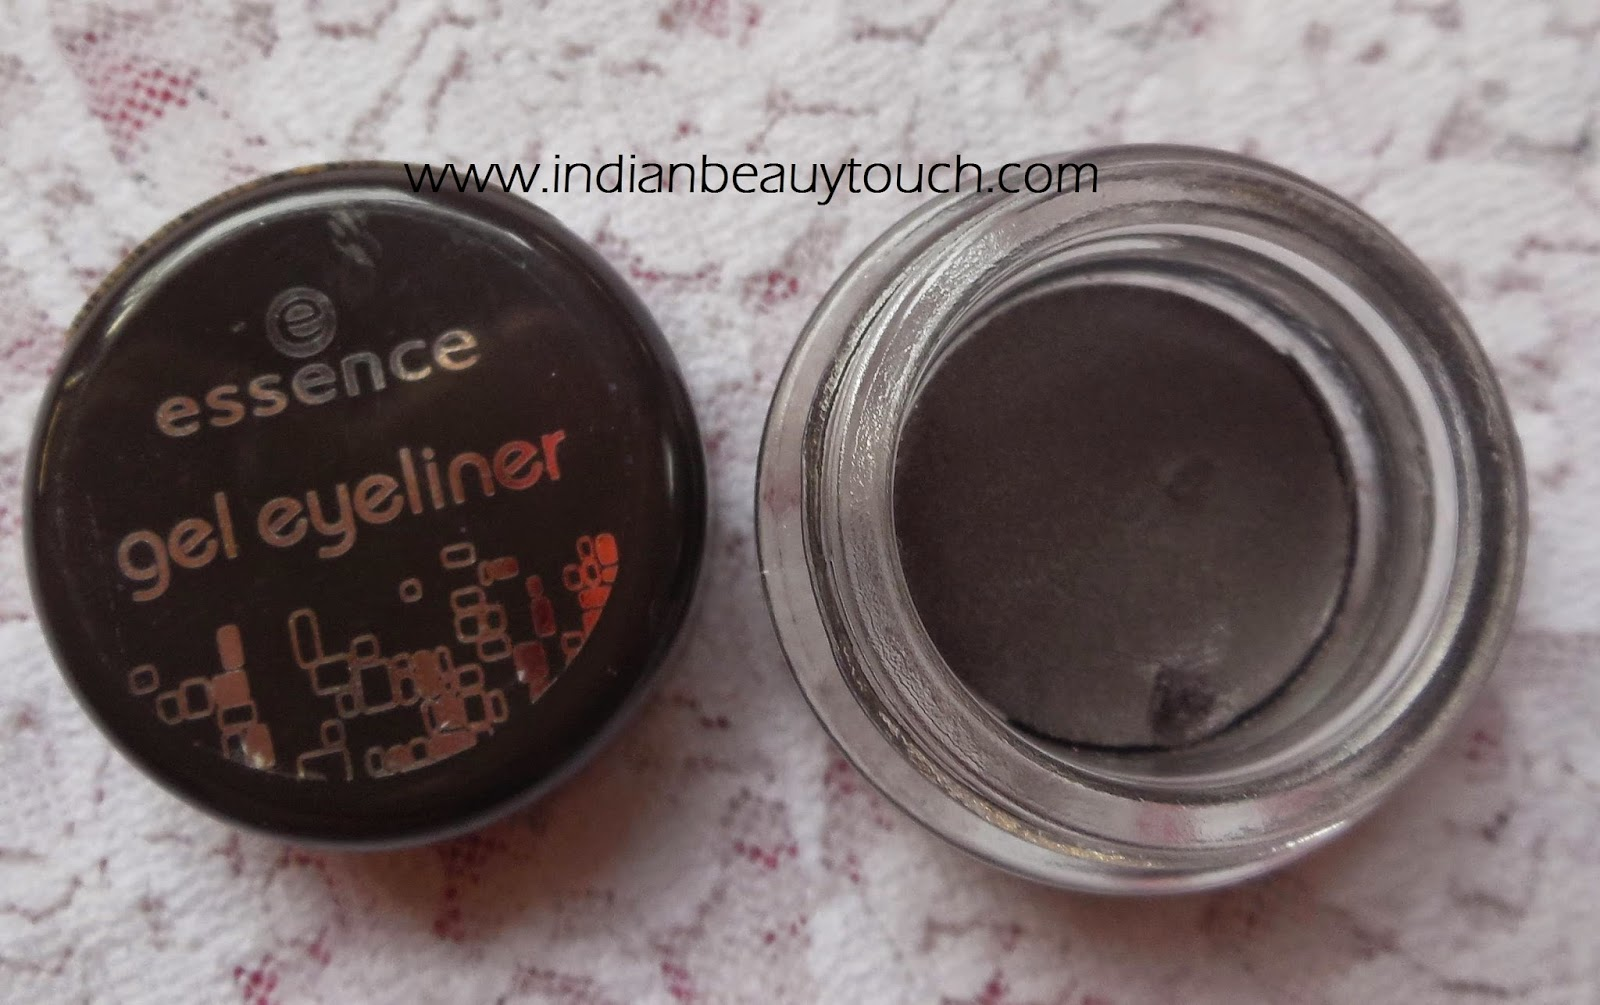 Essence Gel eye liner in 02 London Baby